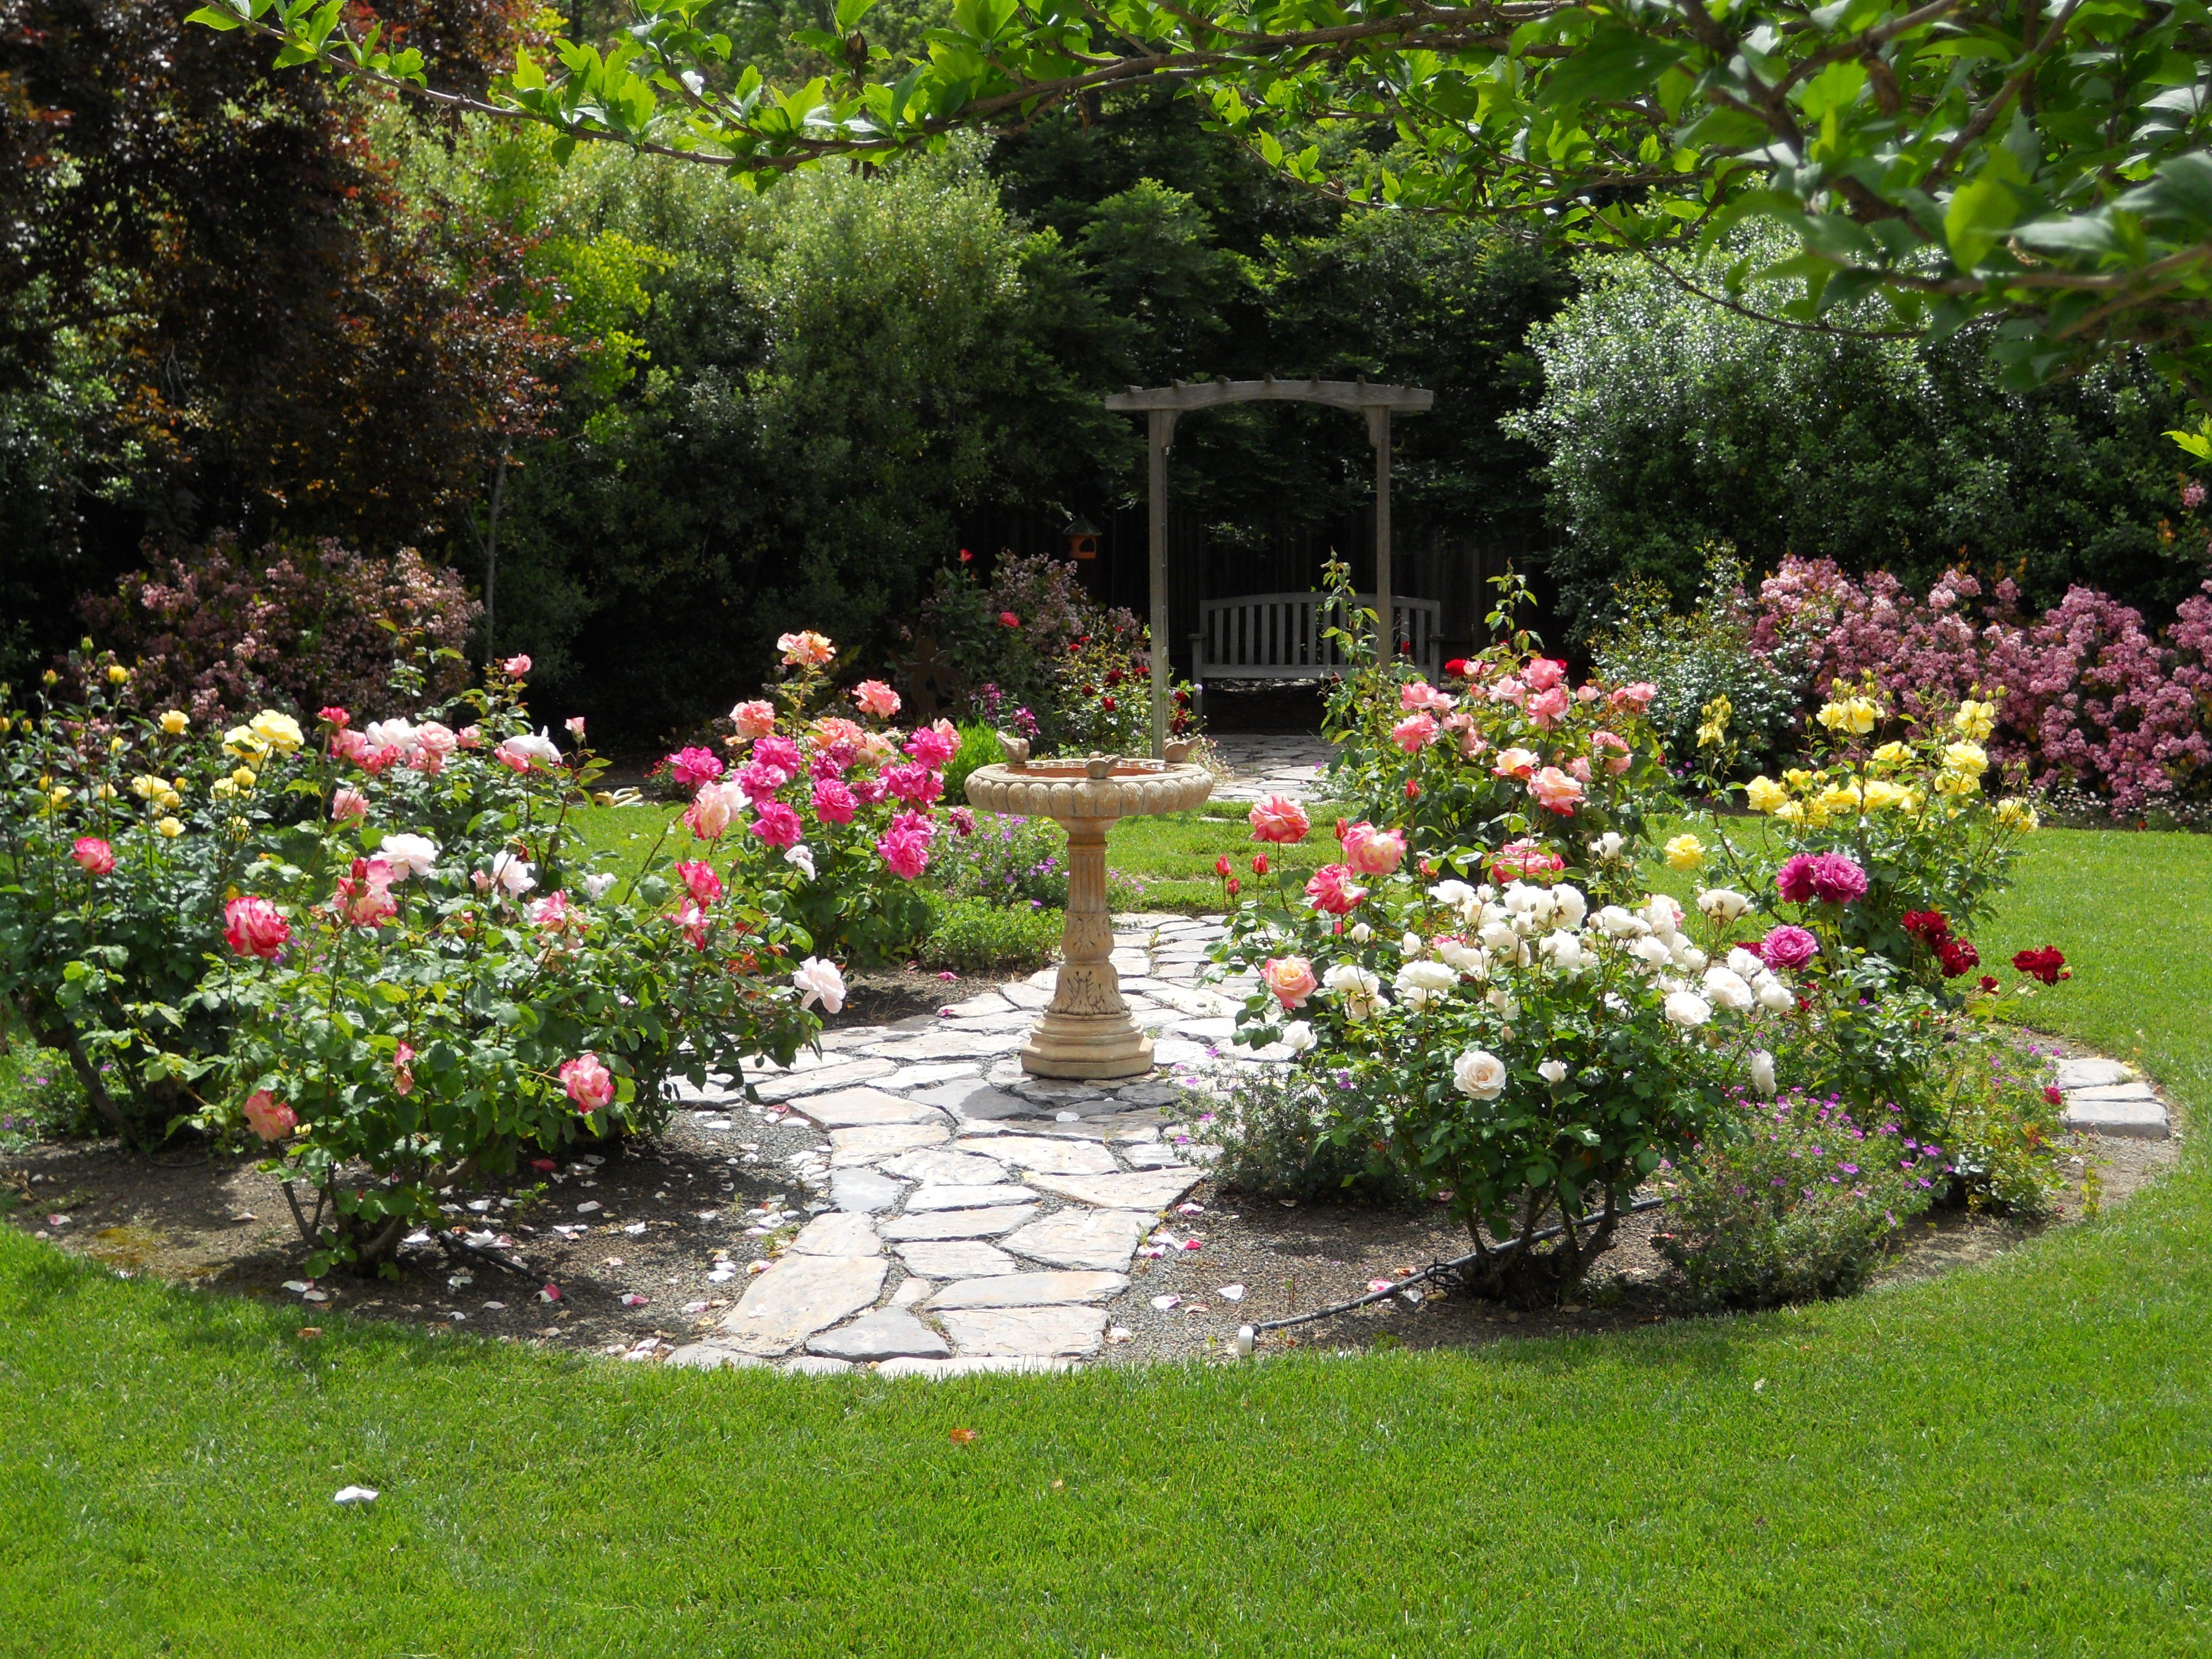 Backyard Flower Garden Designs - Unique Simple Design Ideas Rose ...